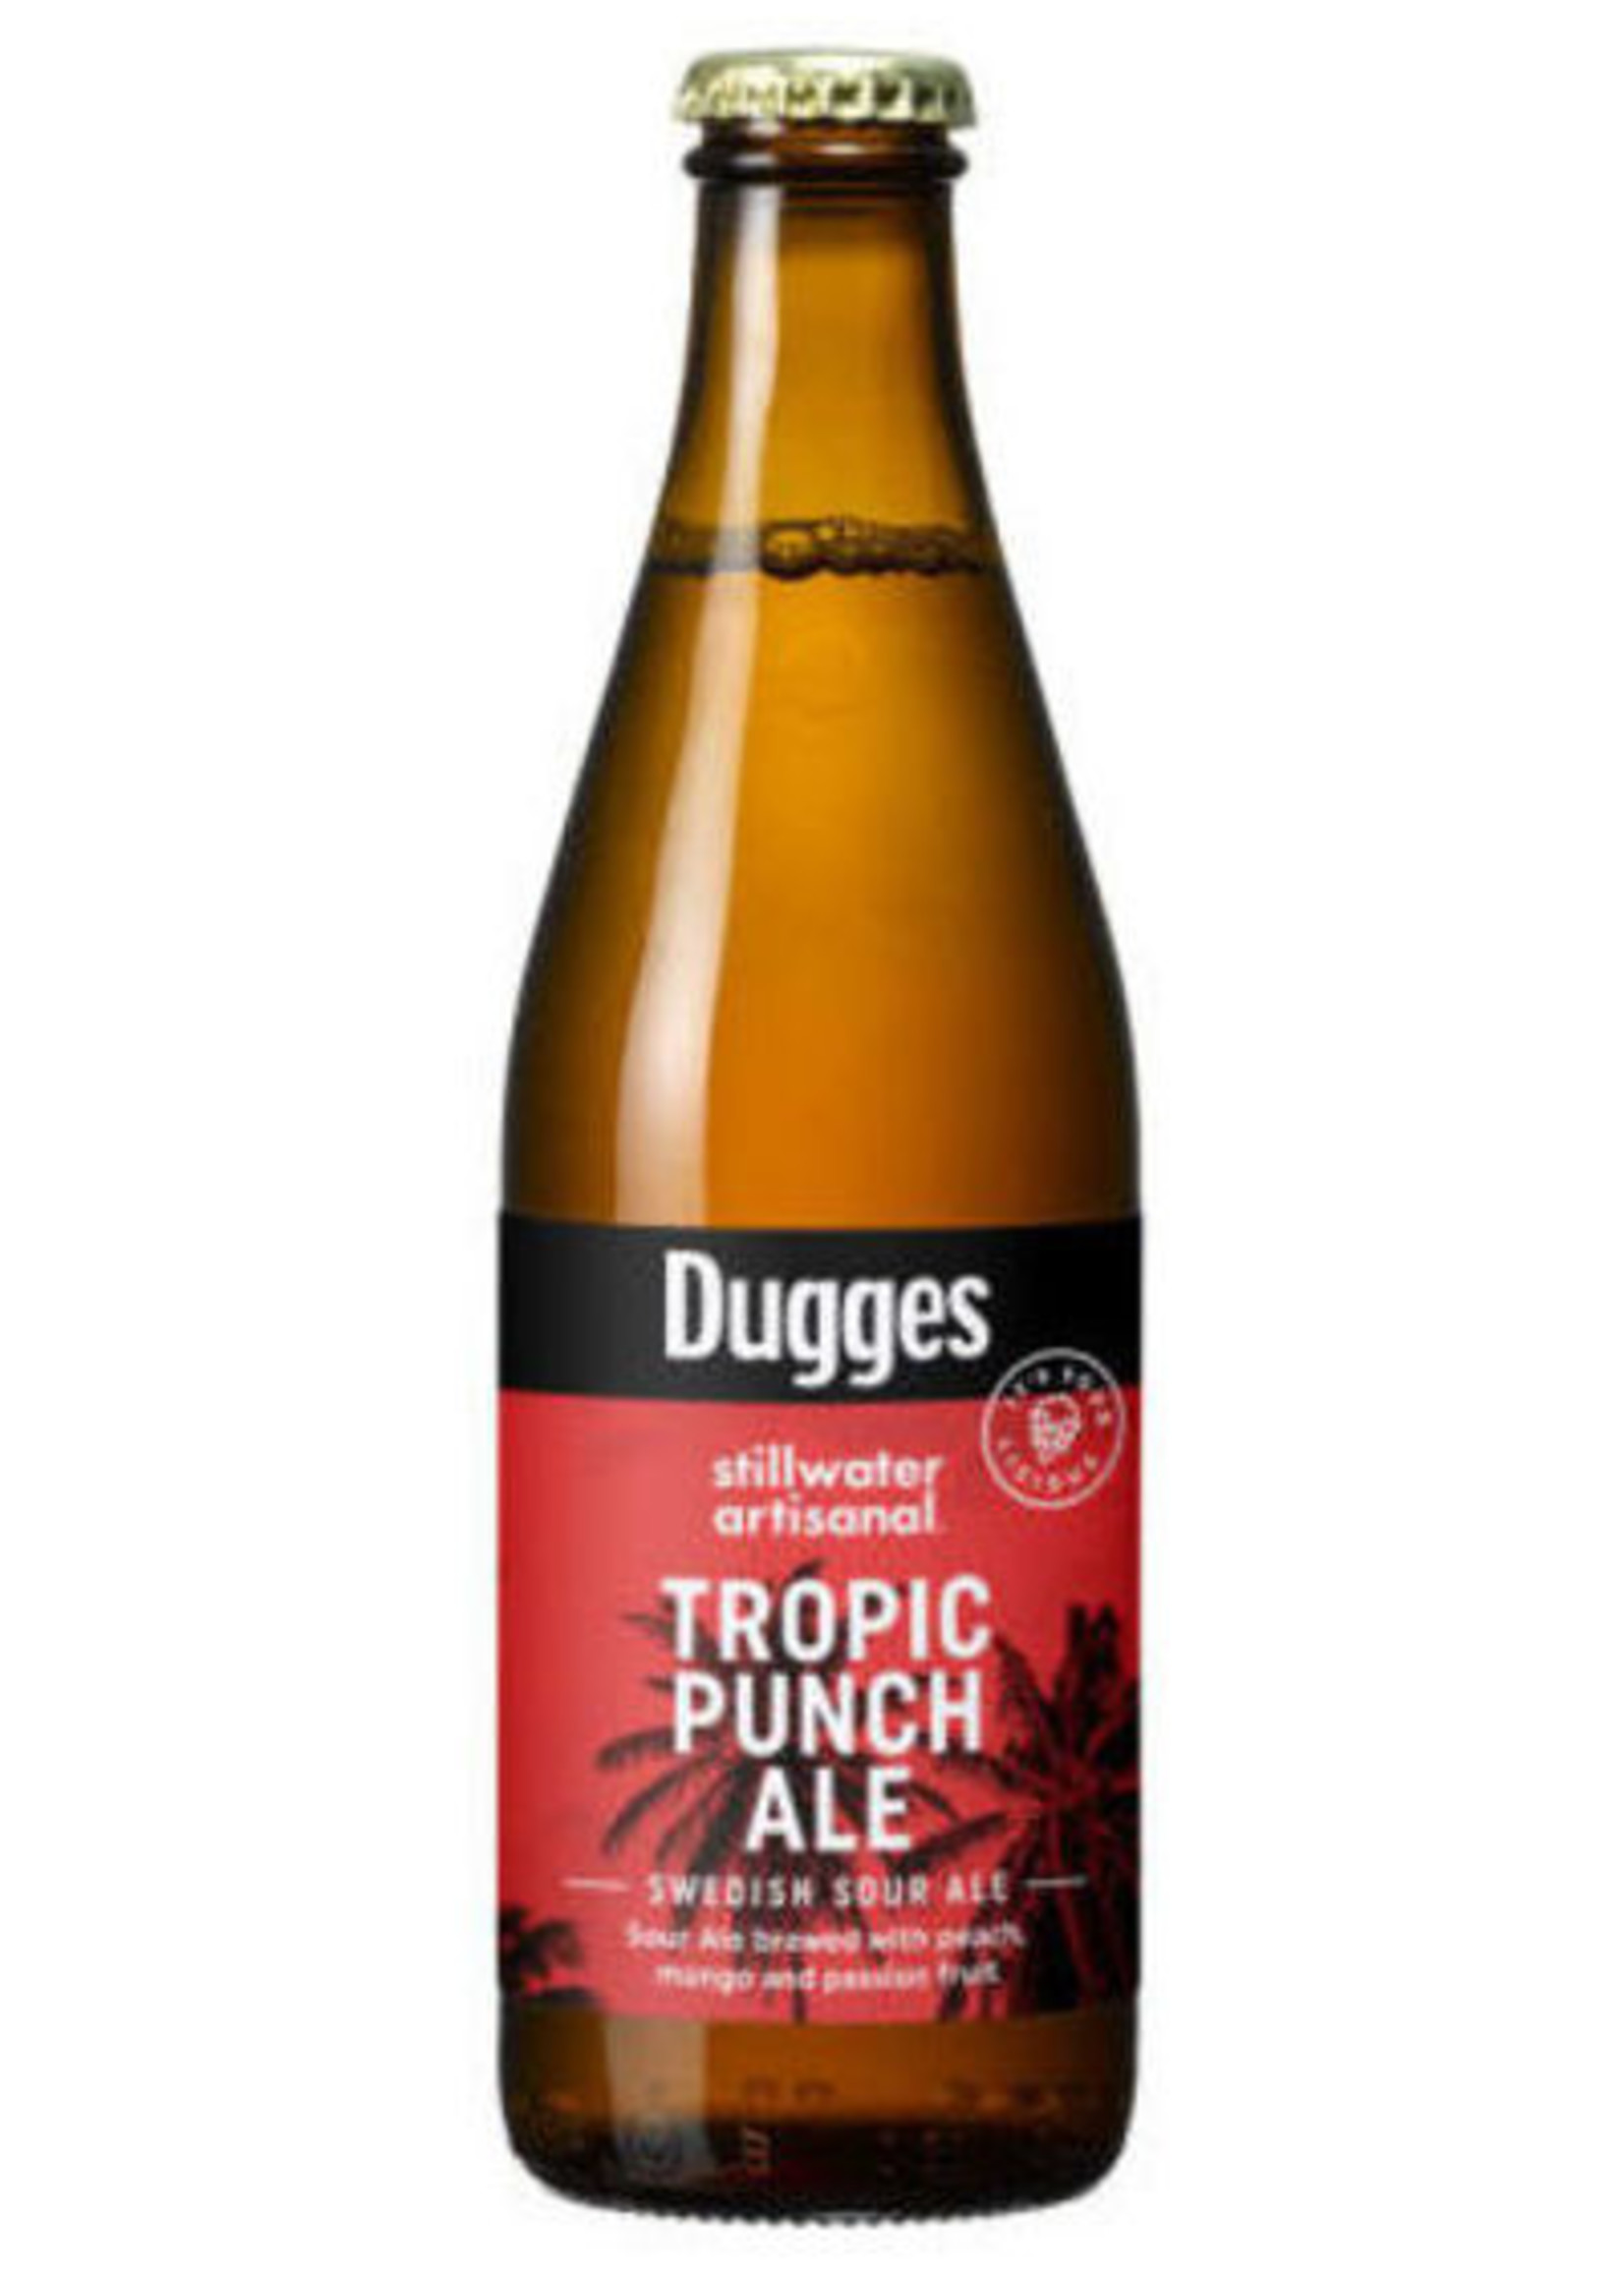 Dugges Tropic Punch